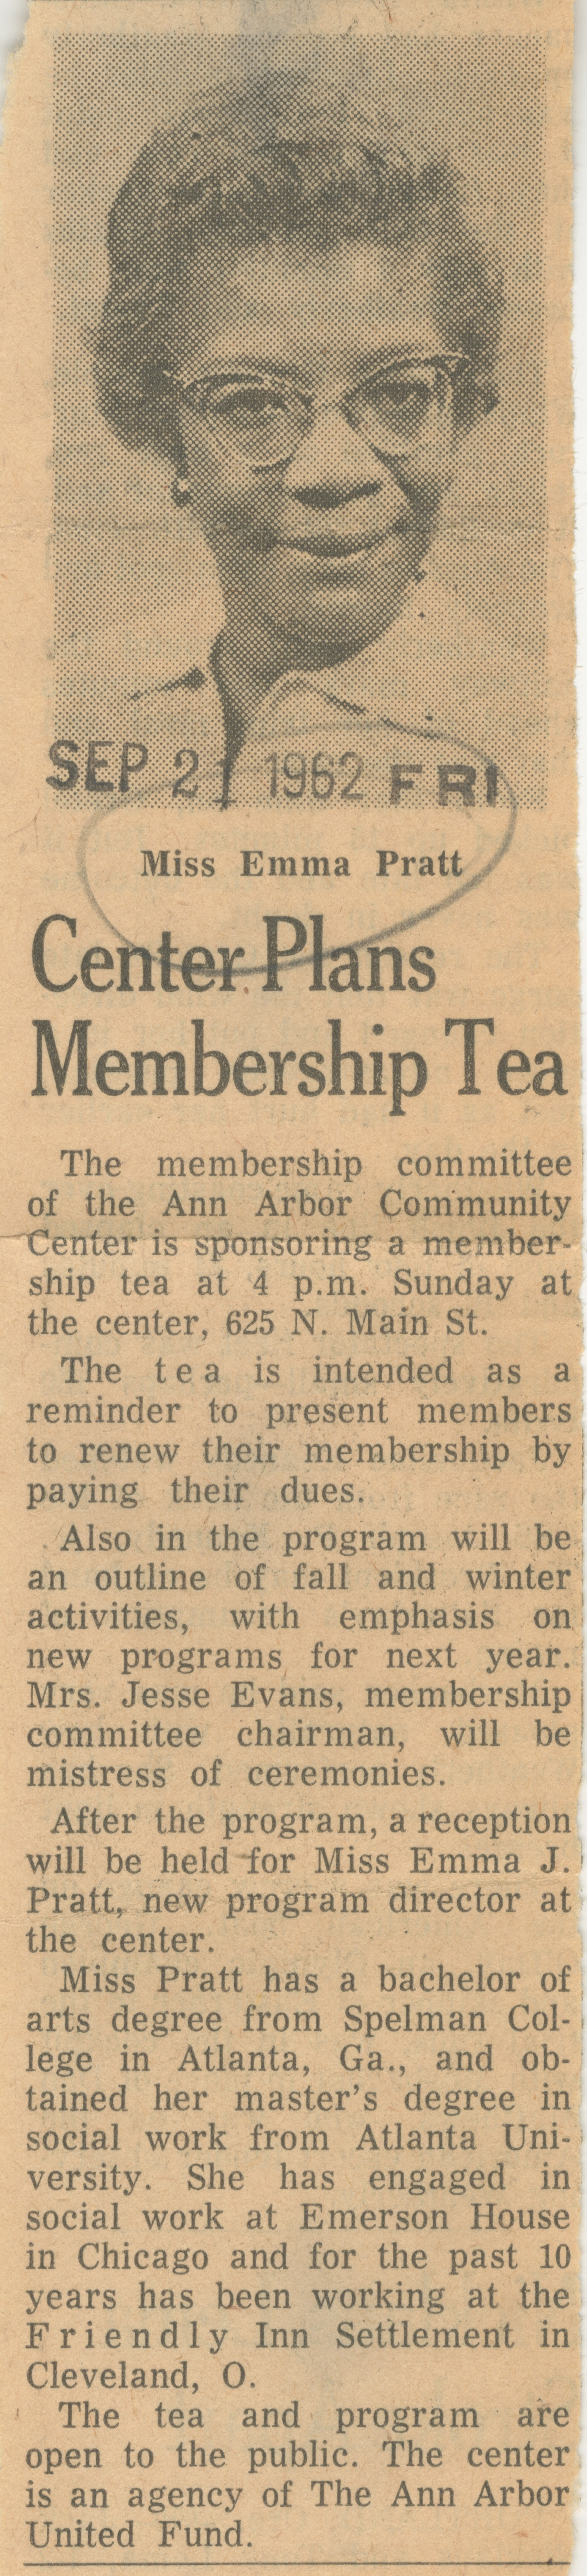 Center Plans Membership Tea image